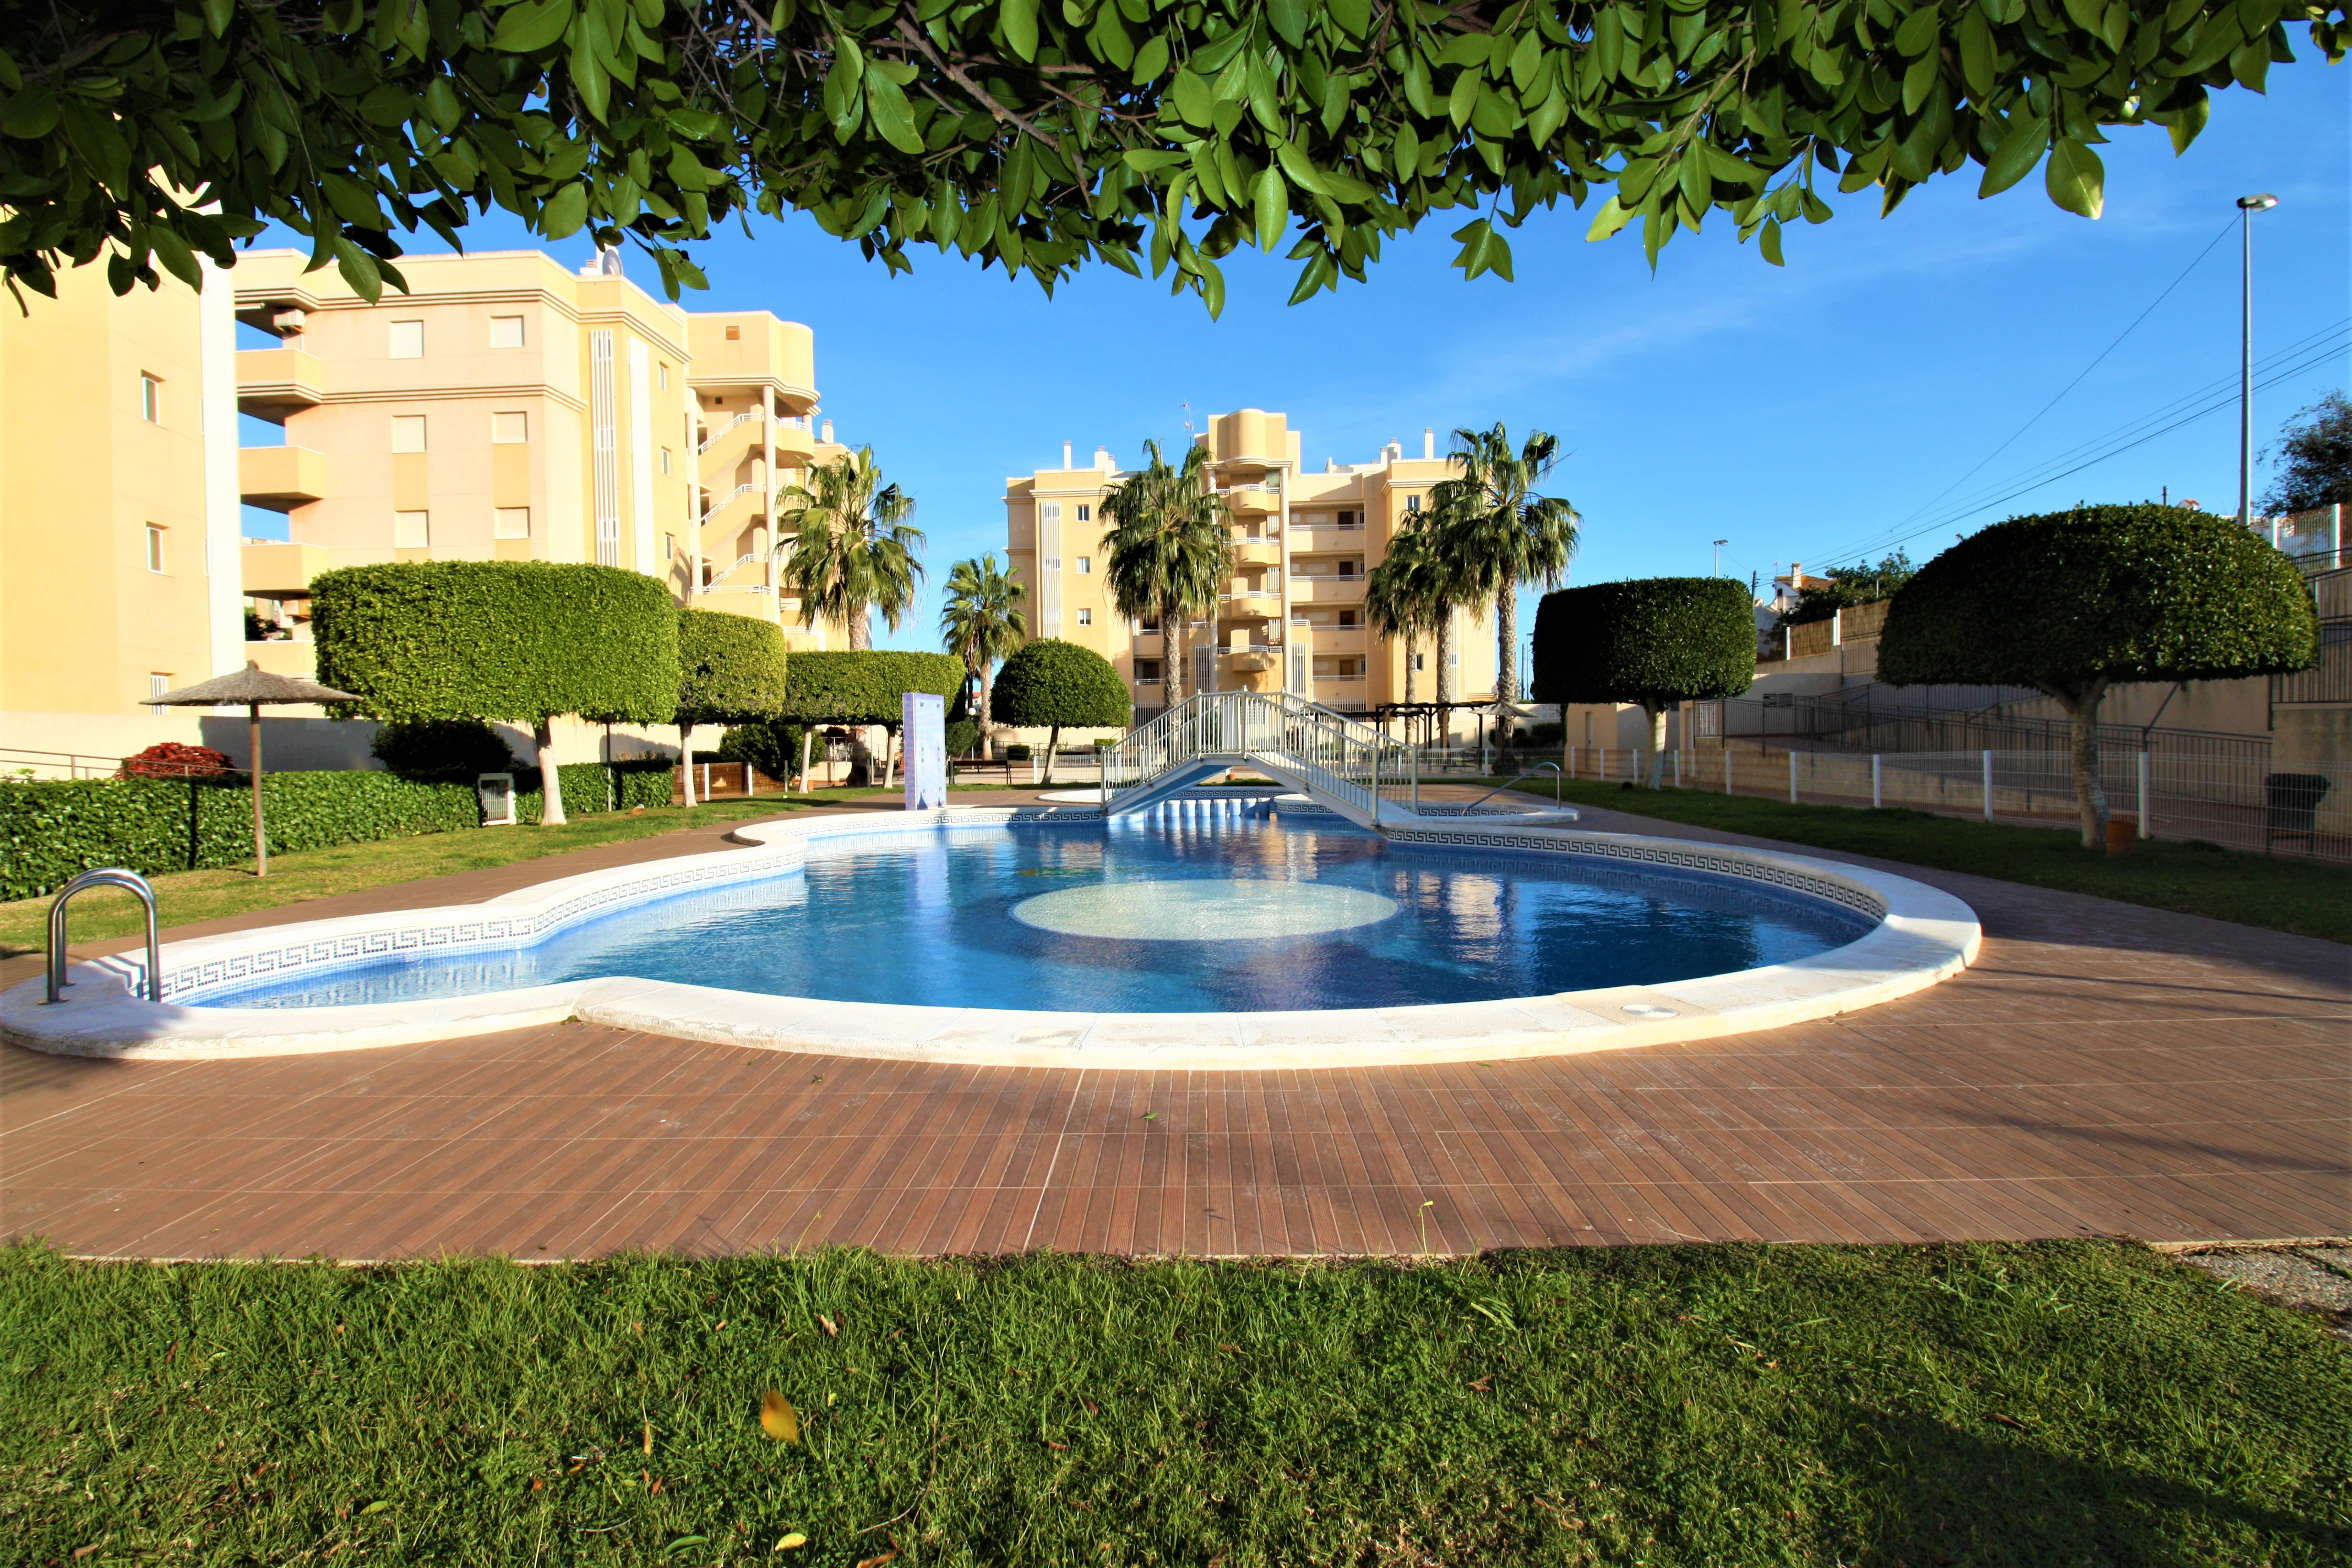 Penthouse with roof terrace in Cala Flores